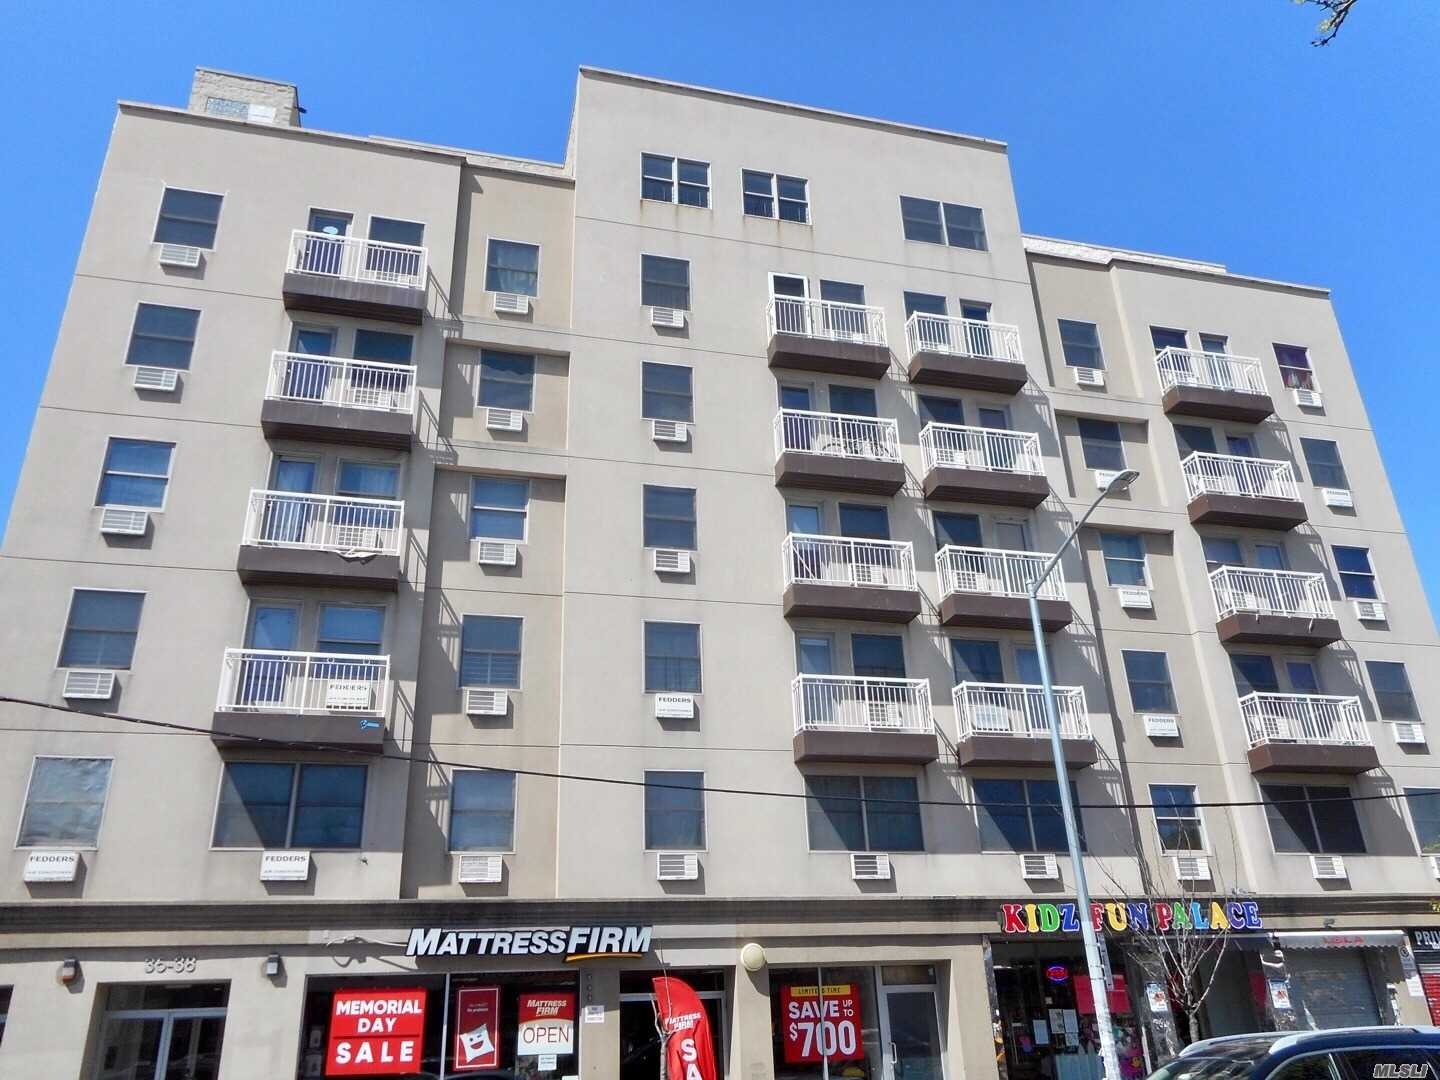 Large L shaped studio with balcony in Corona/ Elmhurst area . Updated kitchen and updated full bath. One block from main subway station, near business, restaurants. The is a newer condo building with 14 more years tax abatement, Real Estate tax only $642 a year now! Low common charge $244 per month including All except electricity. The condo also features free gym room and laundry room. Come see it before it's gone!